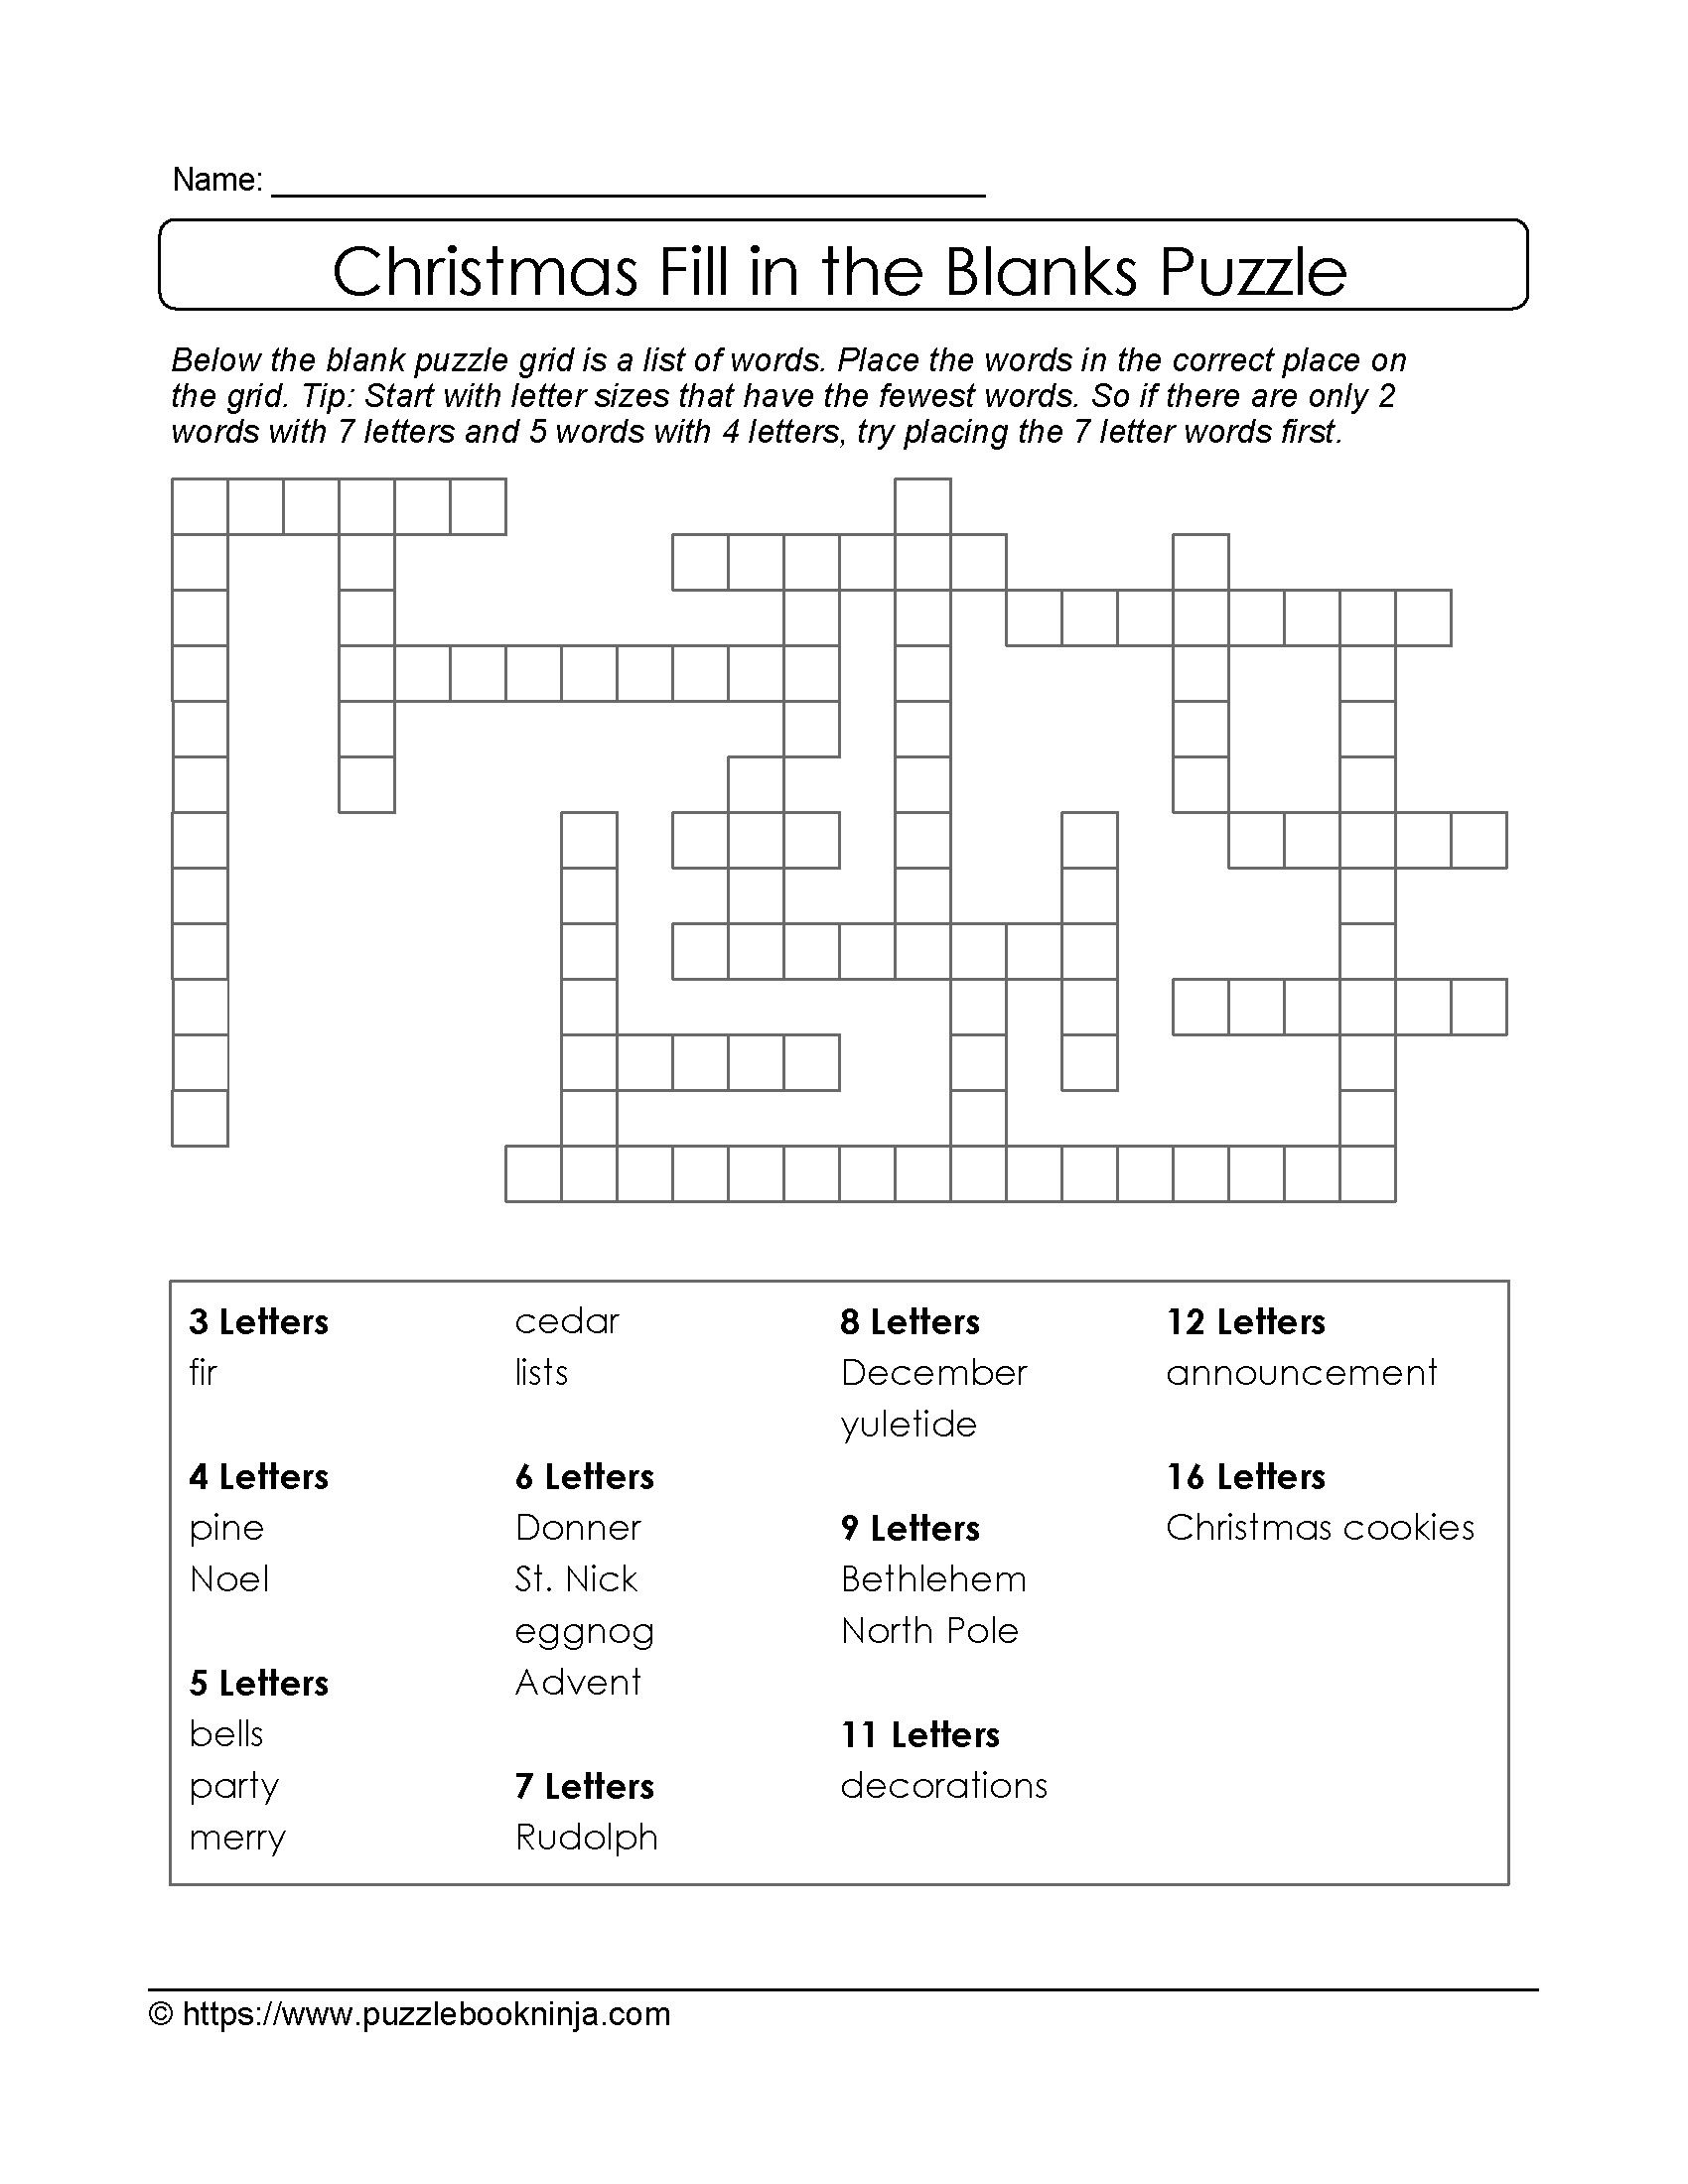 Christmas Printable Puzzle. Free Fill In The Blanks. | Christmas - Printable Puzzles To Solve